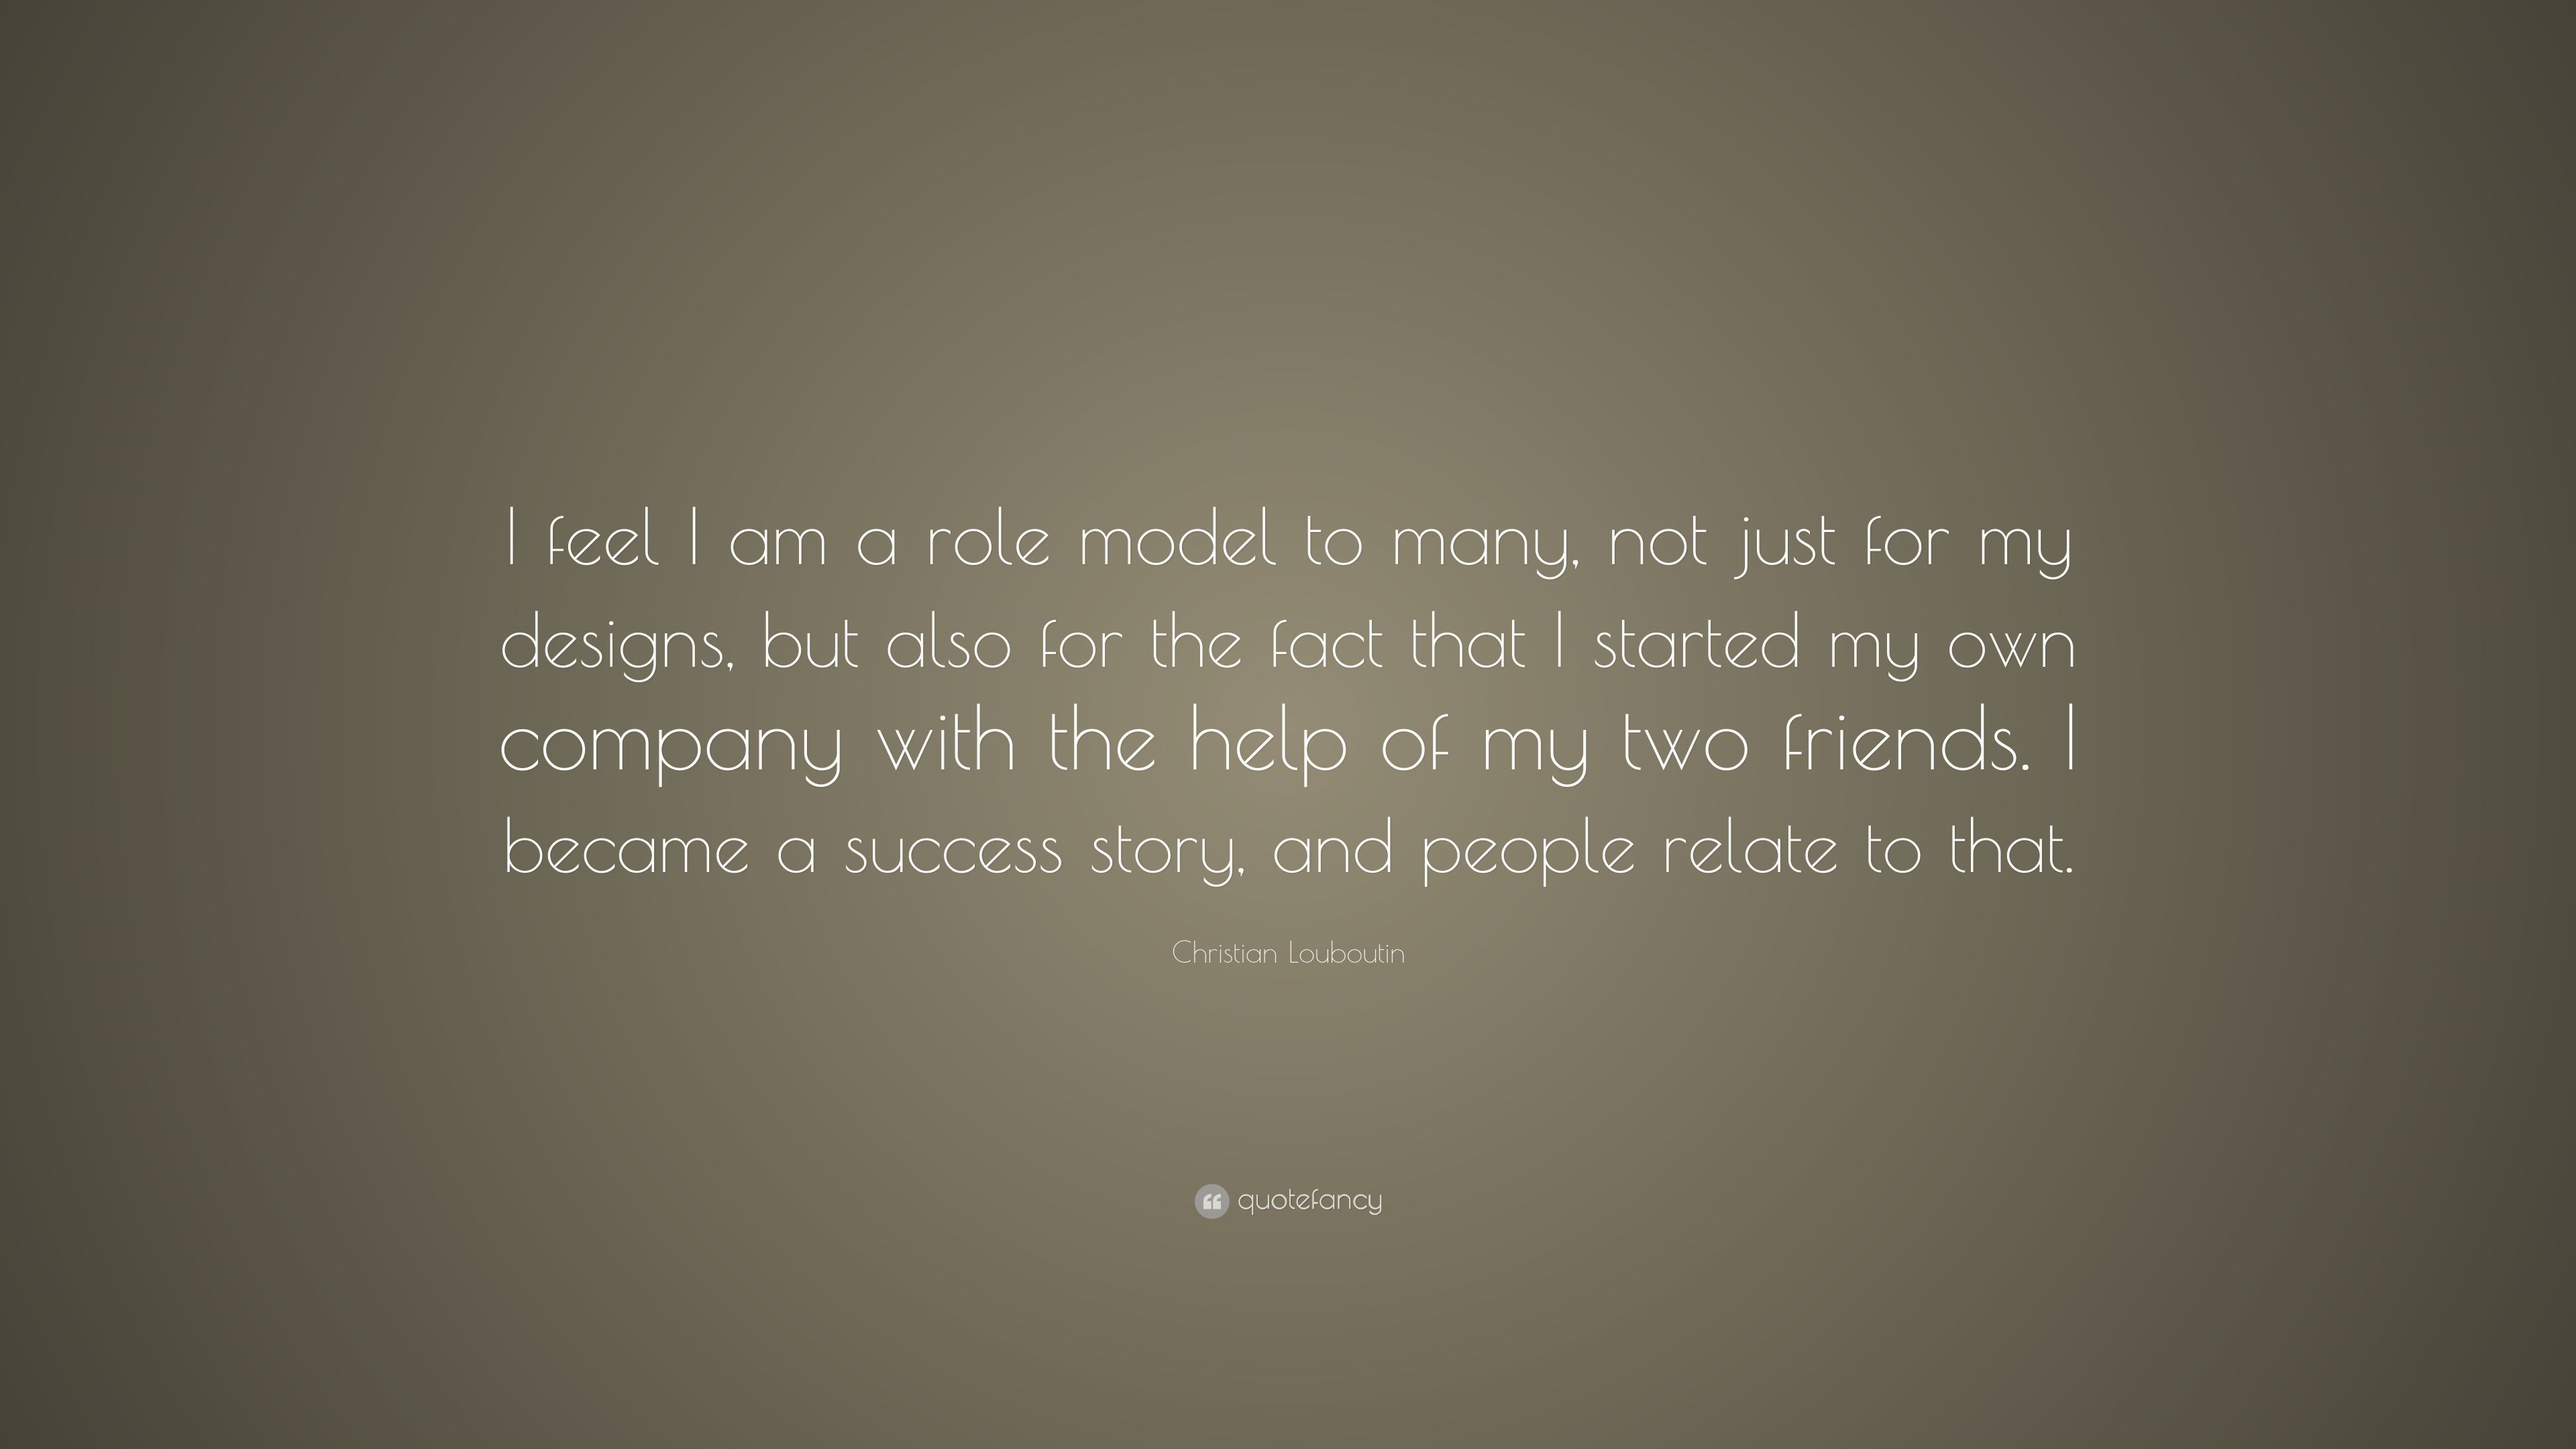 Christian Louboutin Quote: \u201cI feel I am a role model to many, not ...